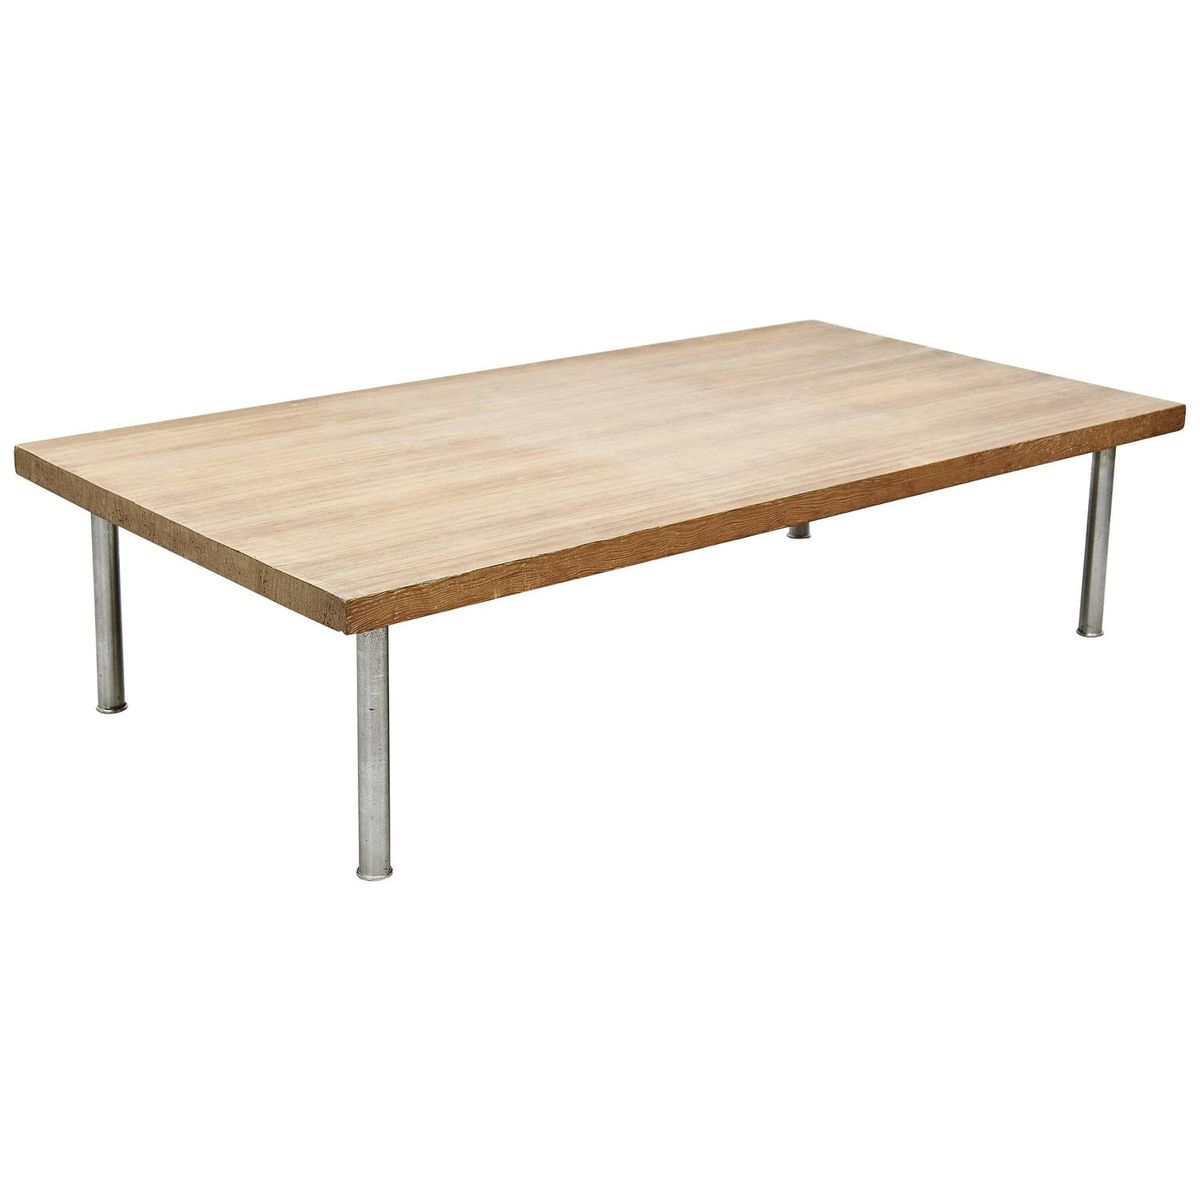 Coffee Table 1950s: French Wood & Steel Coffee Table, 1950s For Sale At Pamono